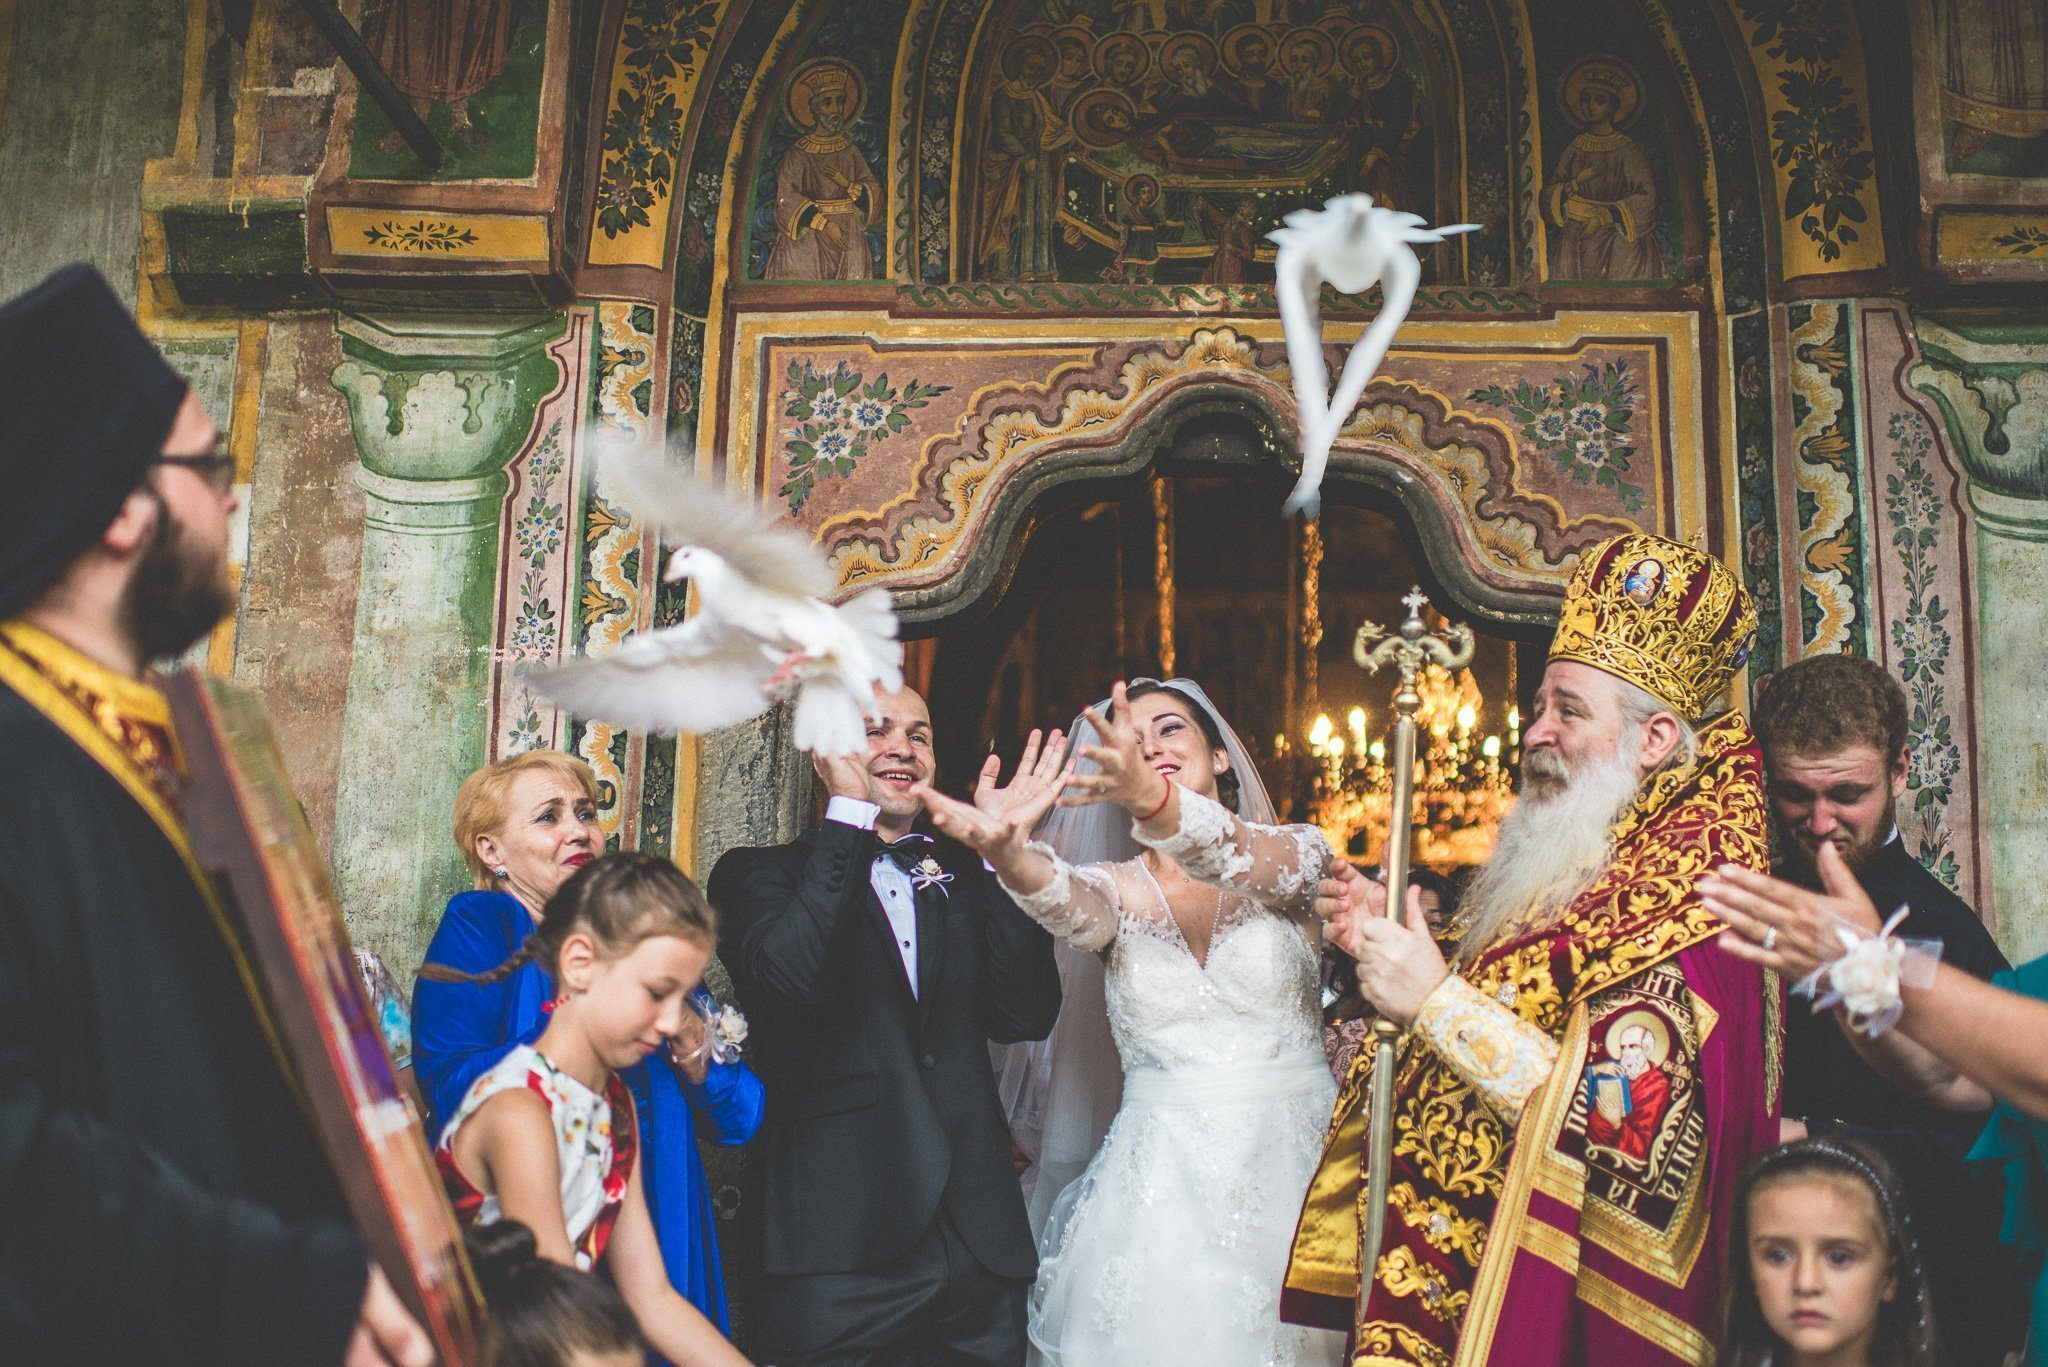 The couple release white doves after their wedding ceremony.